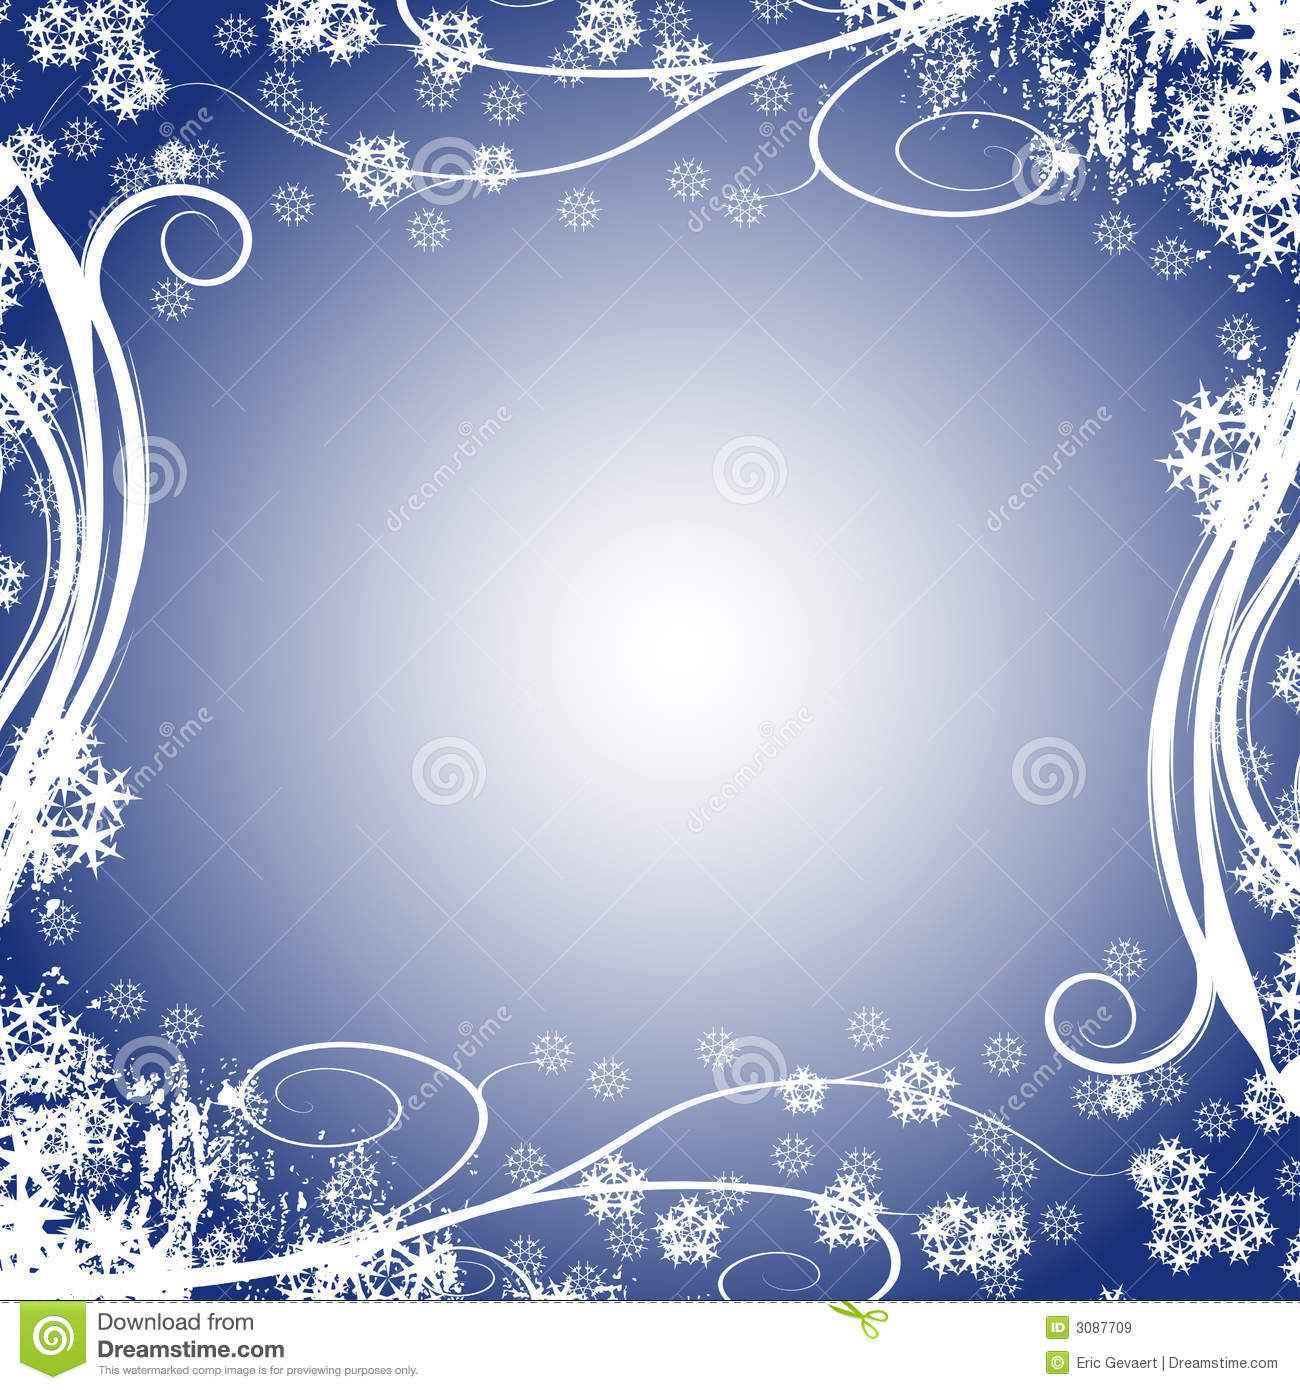 Winter Design Royalty Free Stock Images Image 3087709